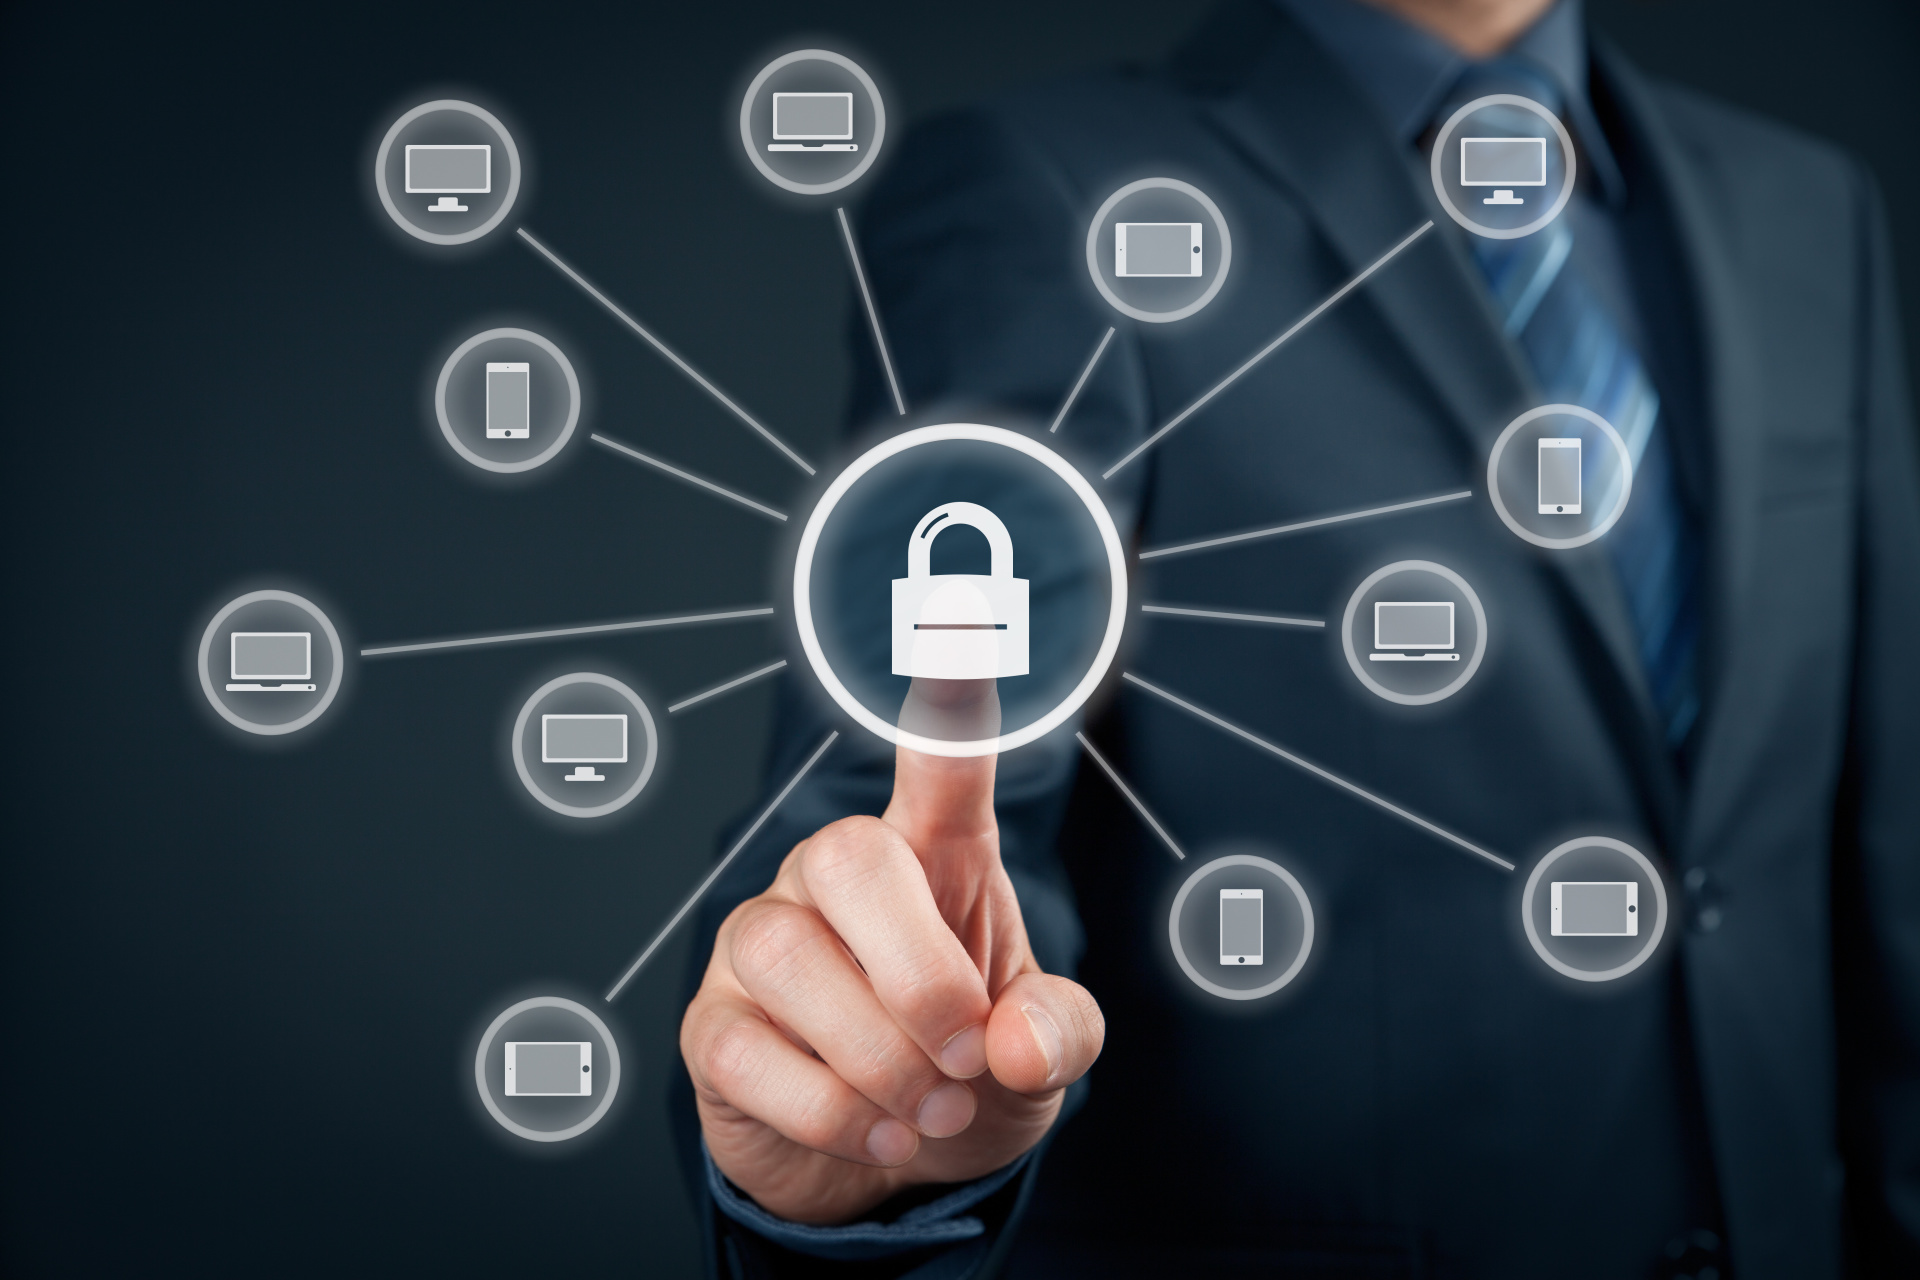 When Cybersecurity is No Longer an Afterthought at the Executive Level